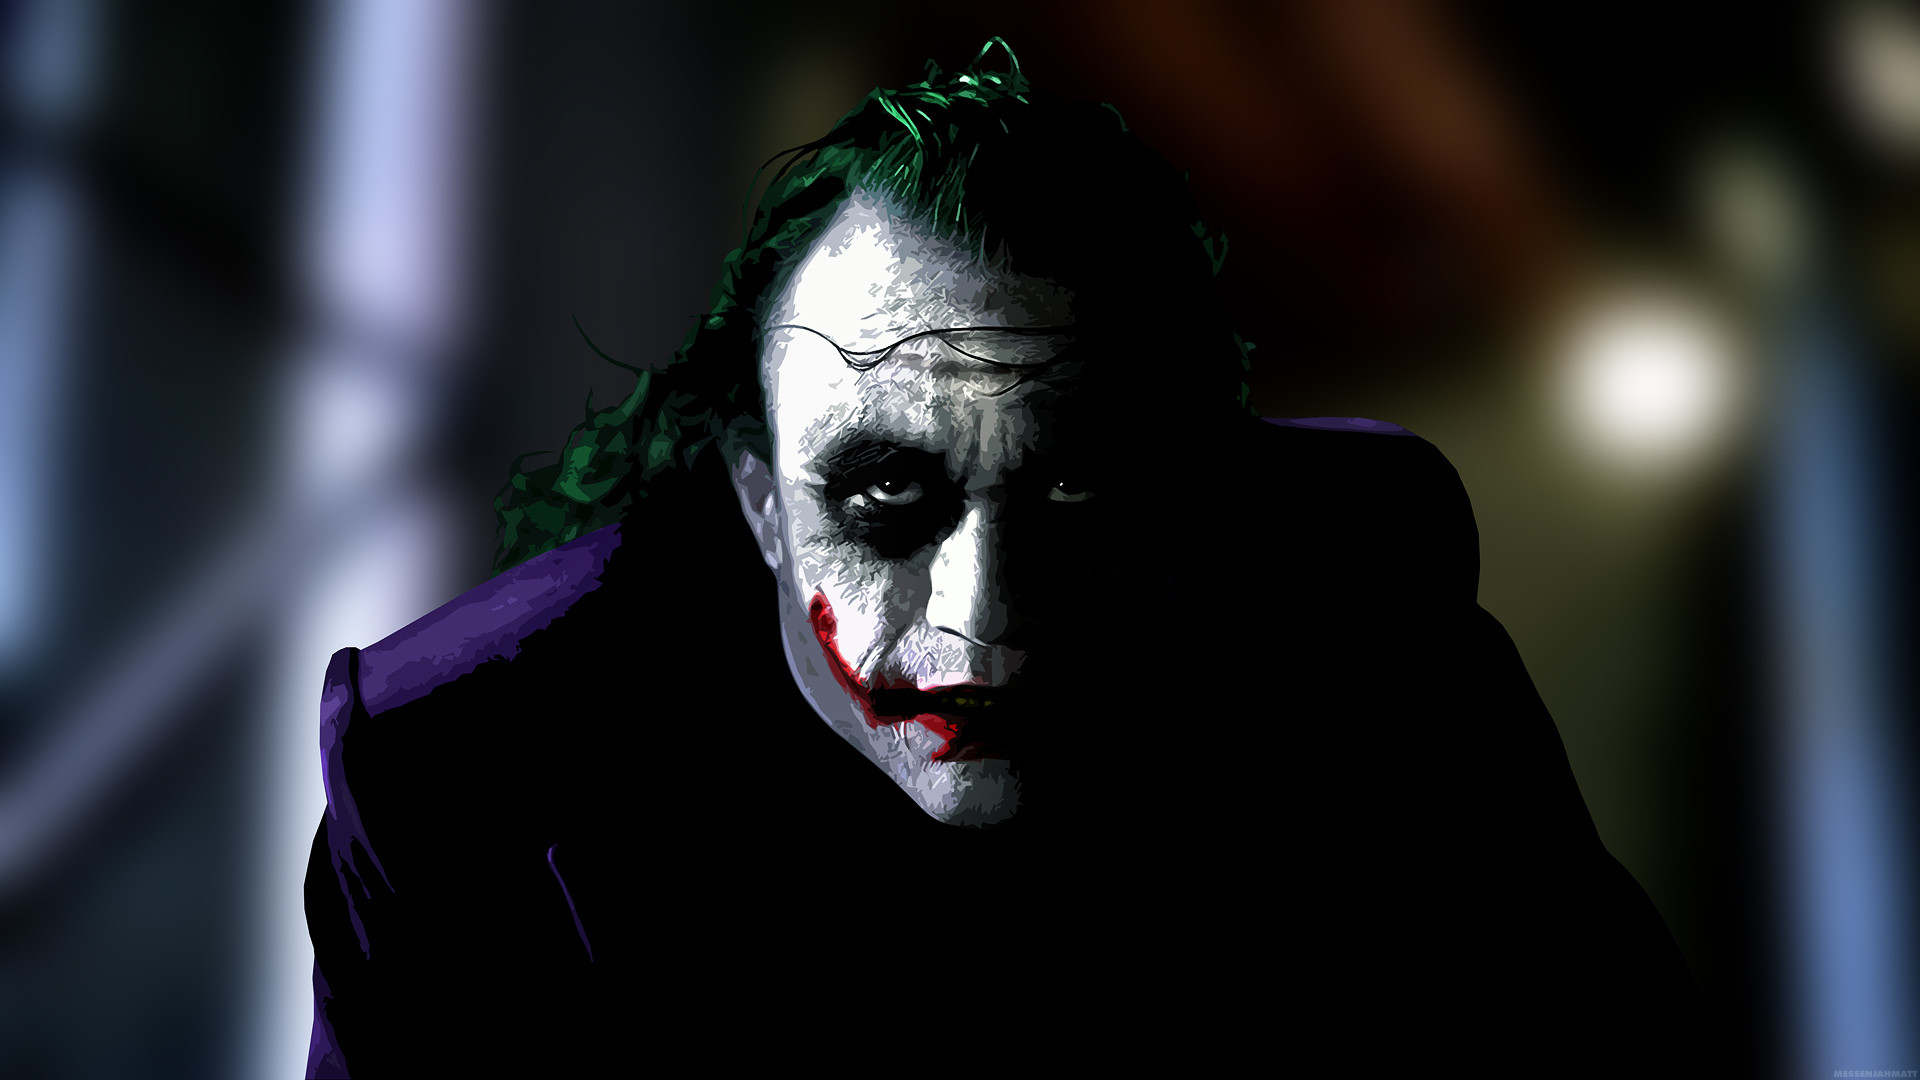 Joker Hd Wallpapers: The Joker HD Wallpaper (67+ Images